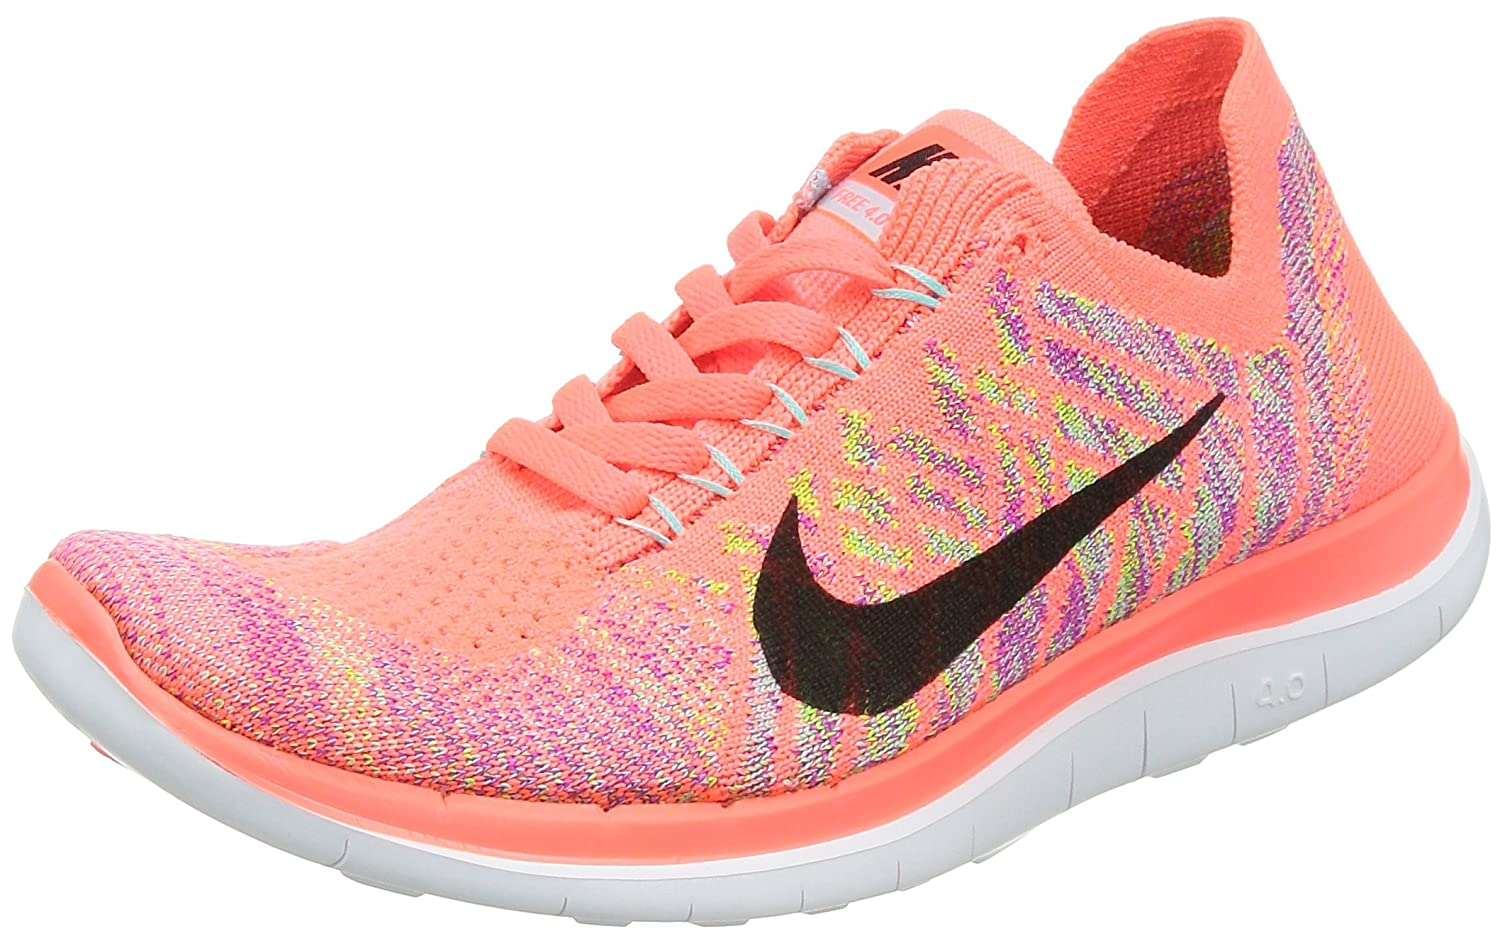 Nike Free 4.0 Flyknit Womens Running Shoes Orange New In Box original new arrival nike roshe one hyp br men s running shoes low top sneakers